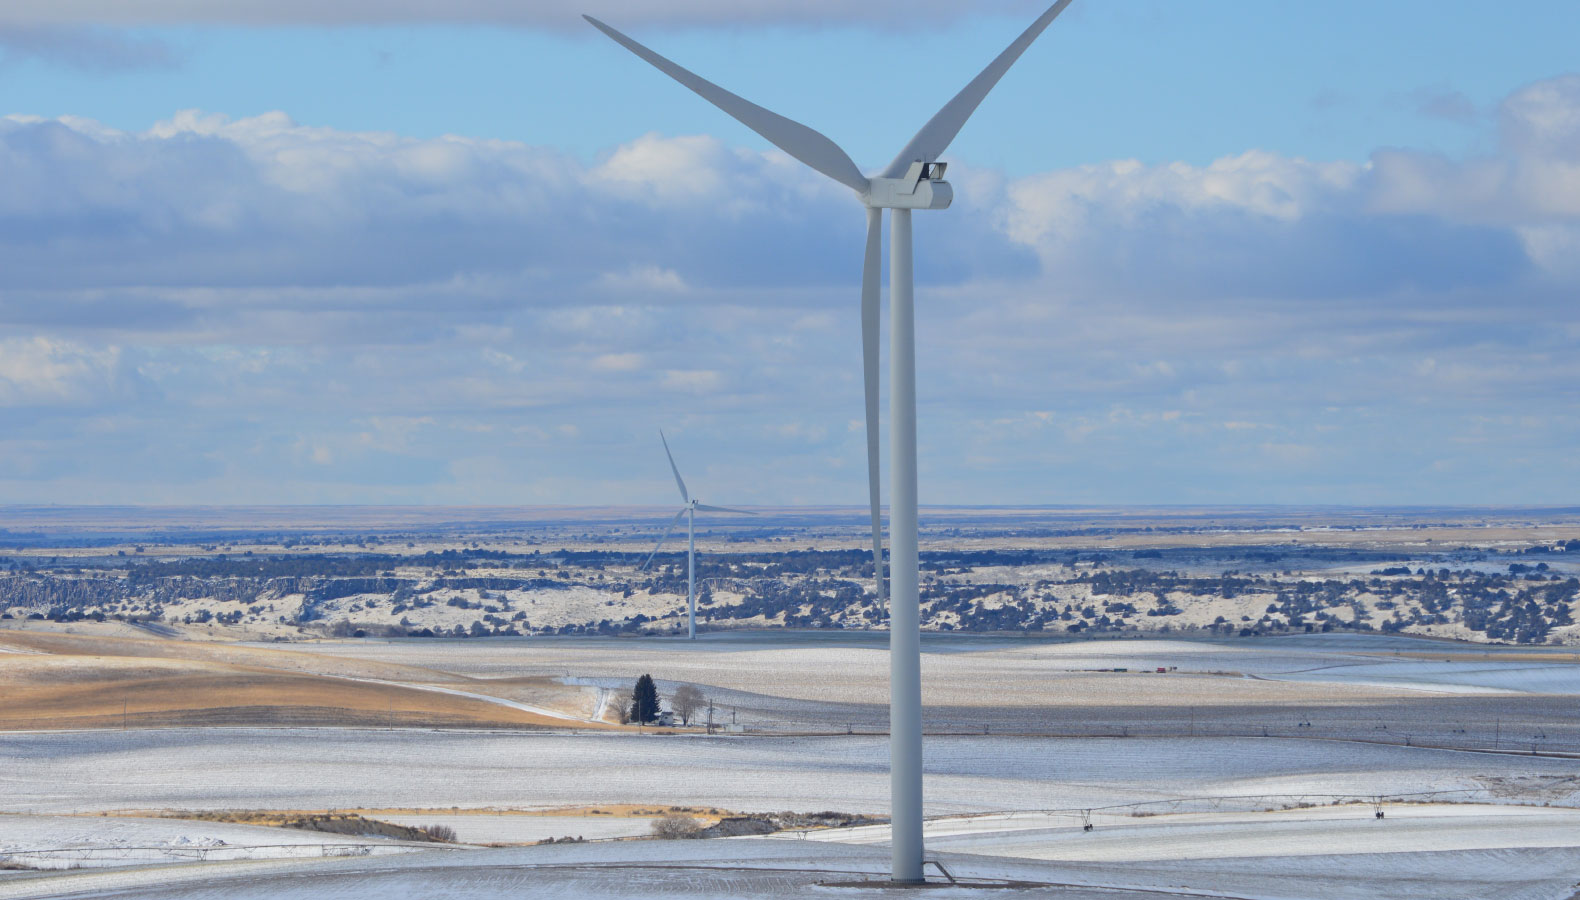 Wind turbine in a snowy field